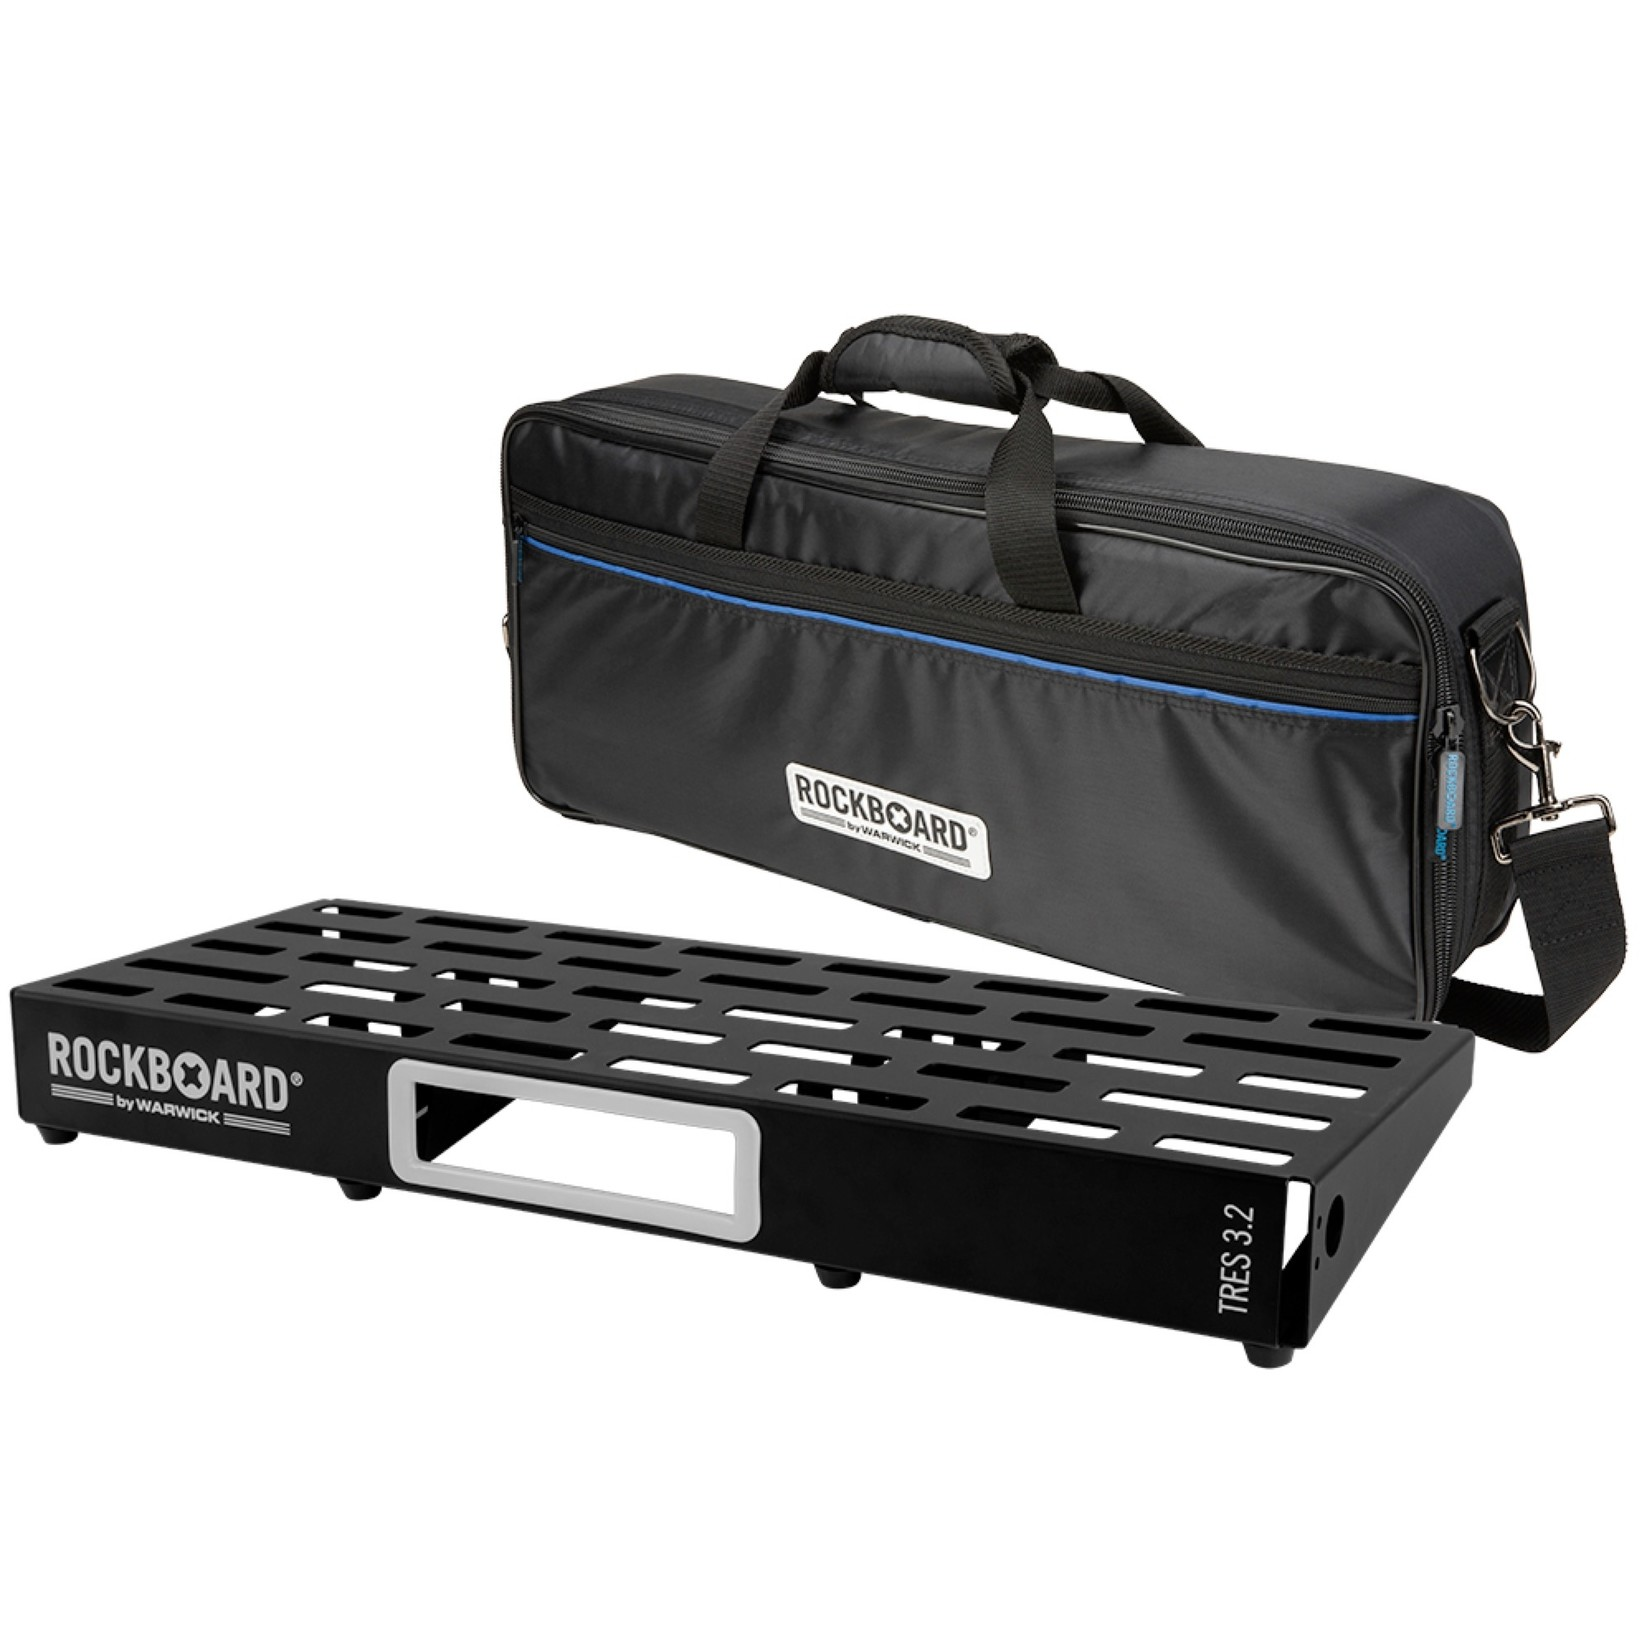 """Rockboard RockBoard TRES 3.2, Pedalboard with Gig Bag, for 7-12 Effects Pedals (approx. 23.5"""" x 9.3"""")"""